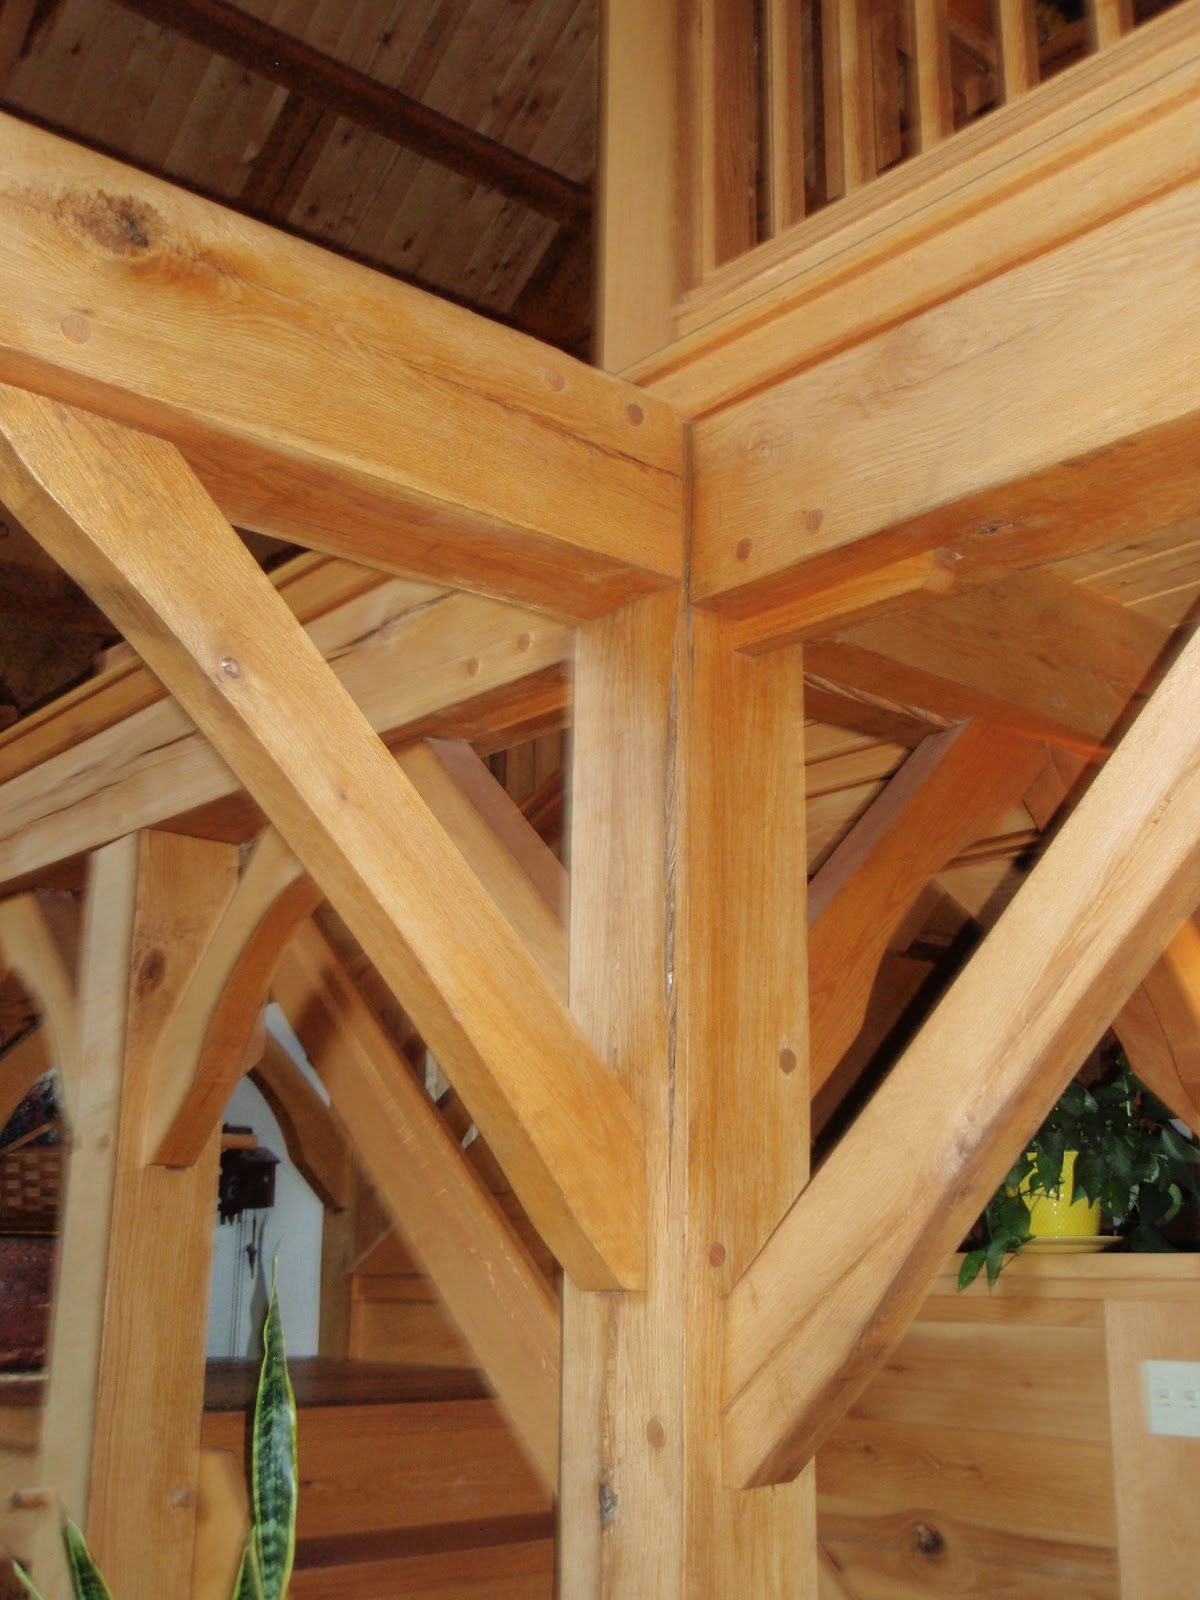 Wood Beam Construction ~ Michael s timber framing chapter first floor